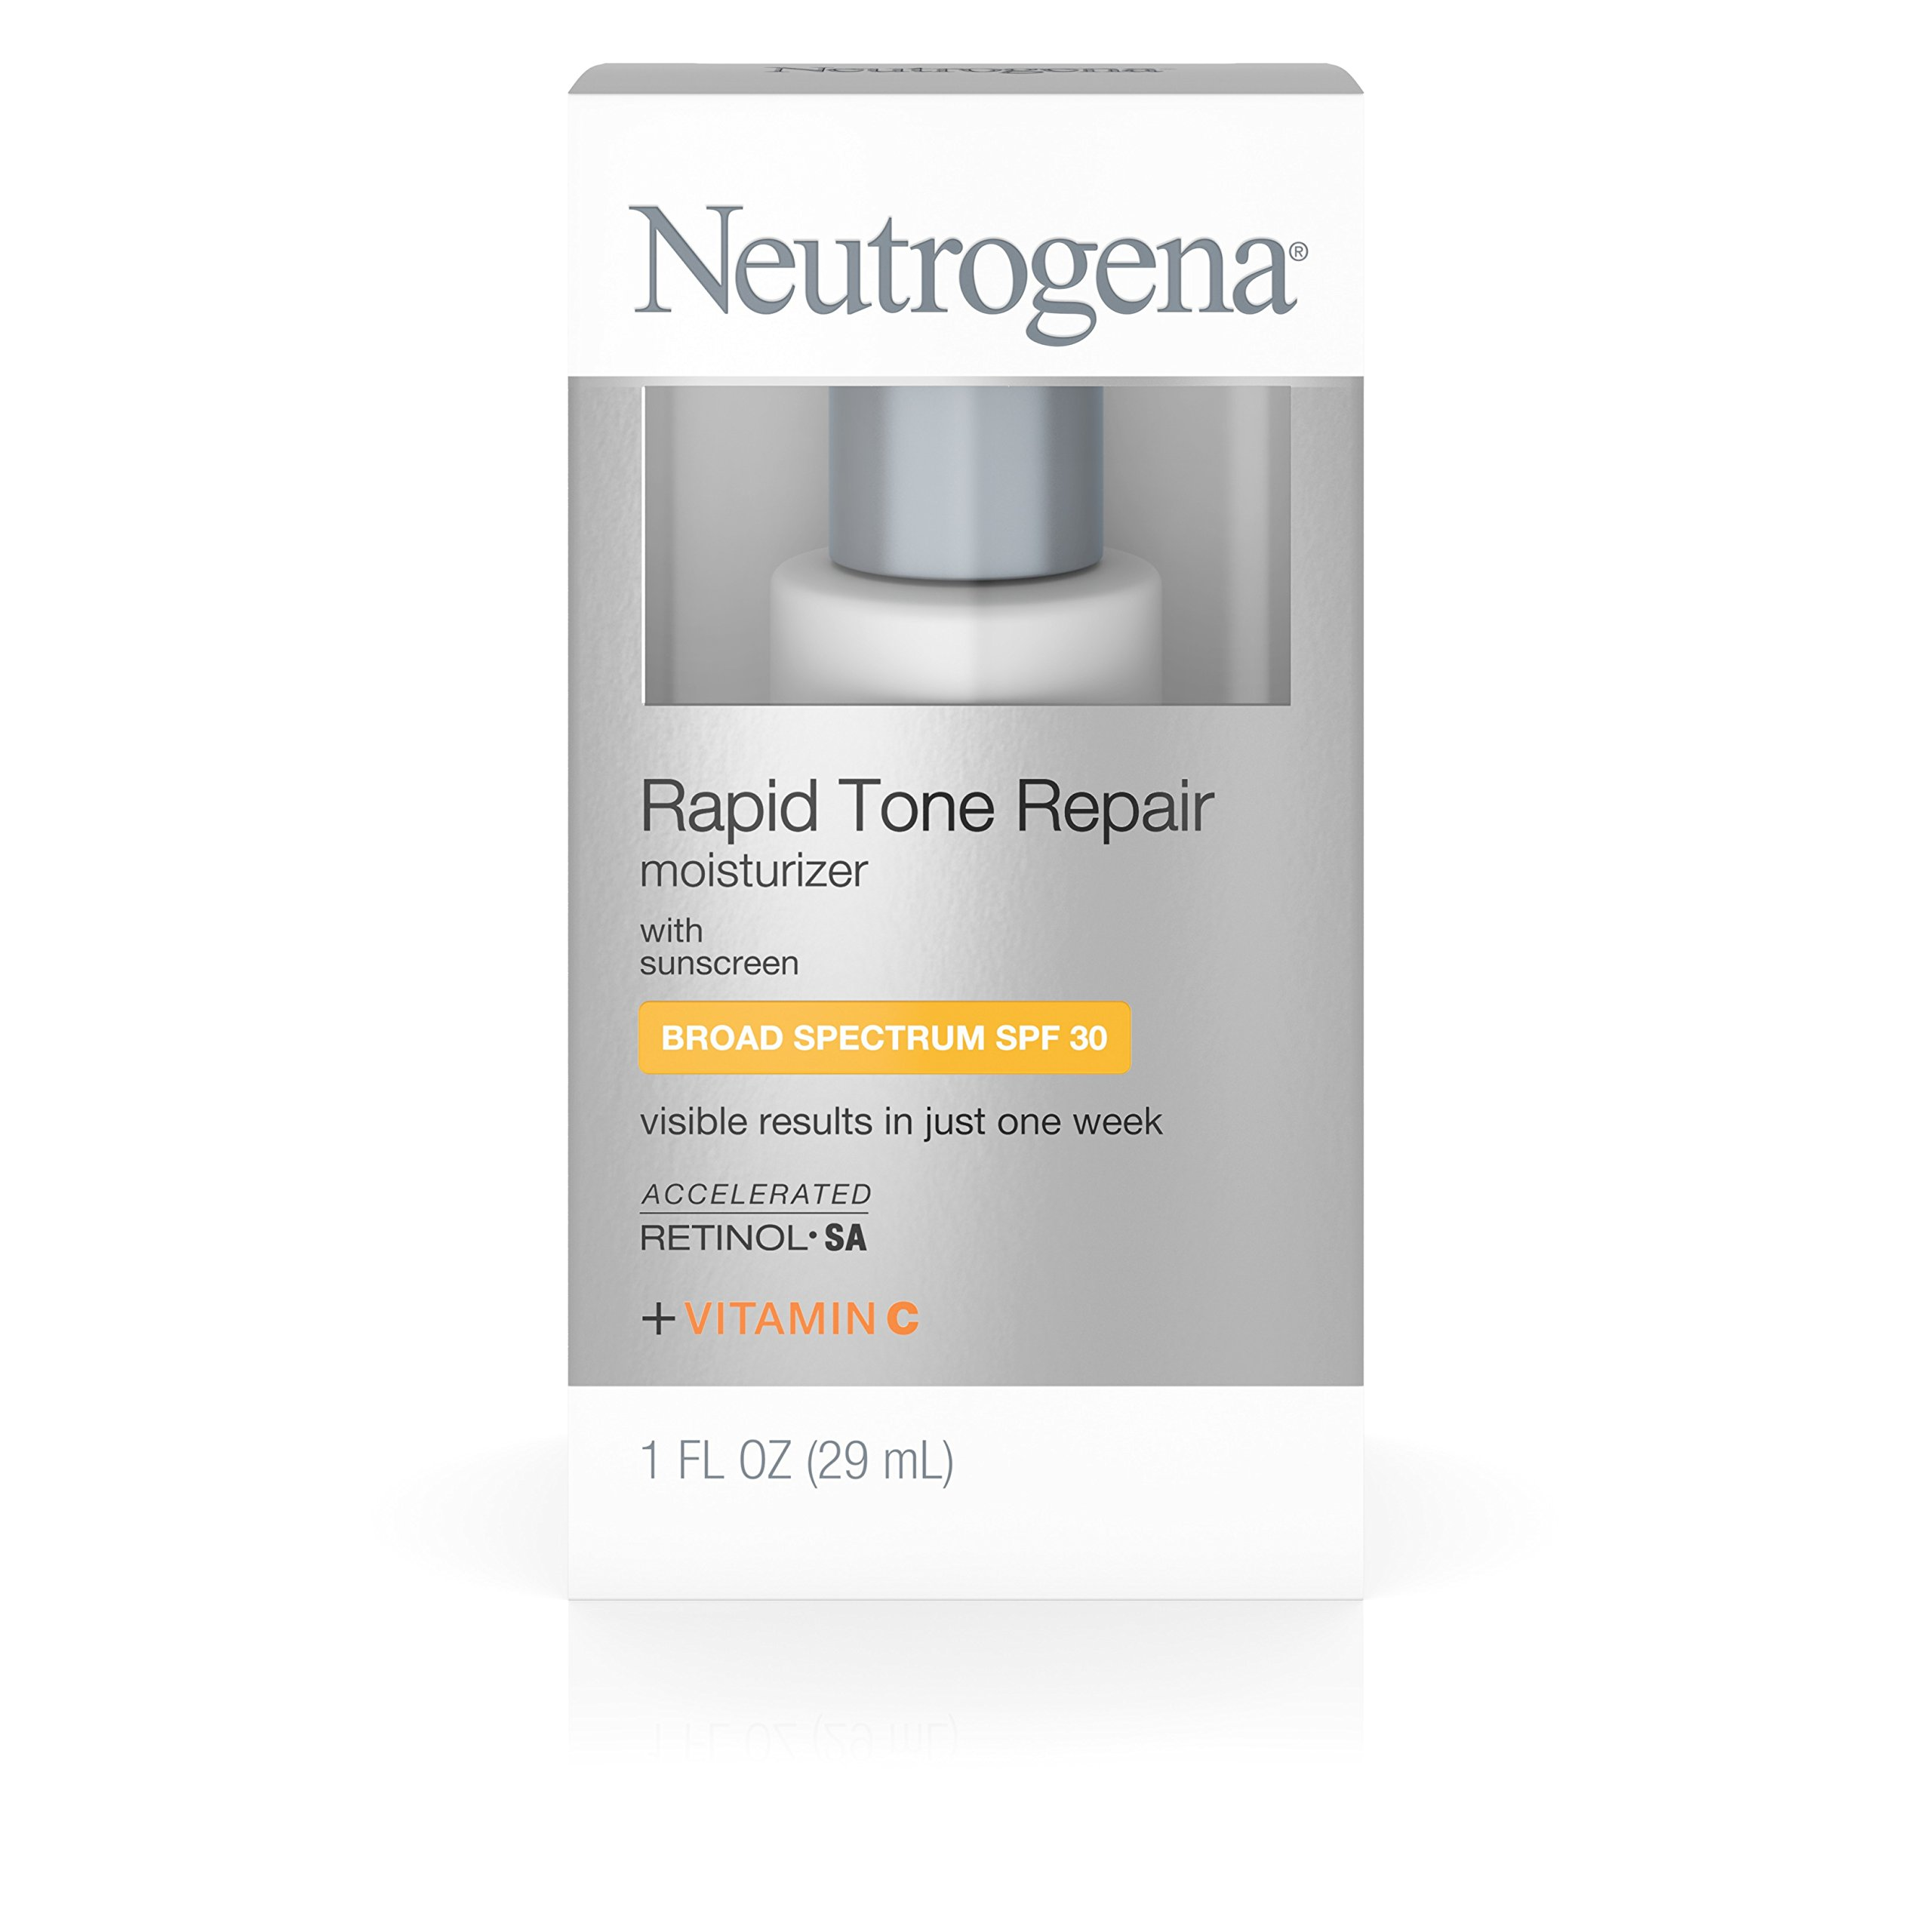 Neutrogena Rapid Tone Repair Daily Facial Moisturizer with Retinol, Vitamin C, Hyaluronic Acid and SPF 30 Sunscreen to Reduce the Look of Dark Spots and Even Skin Tone, 1 fl. oz